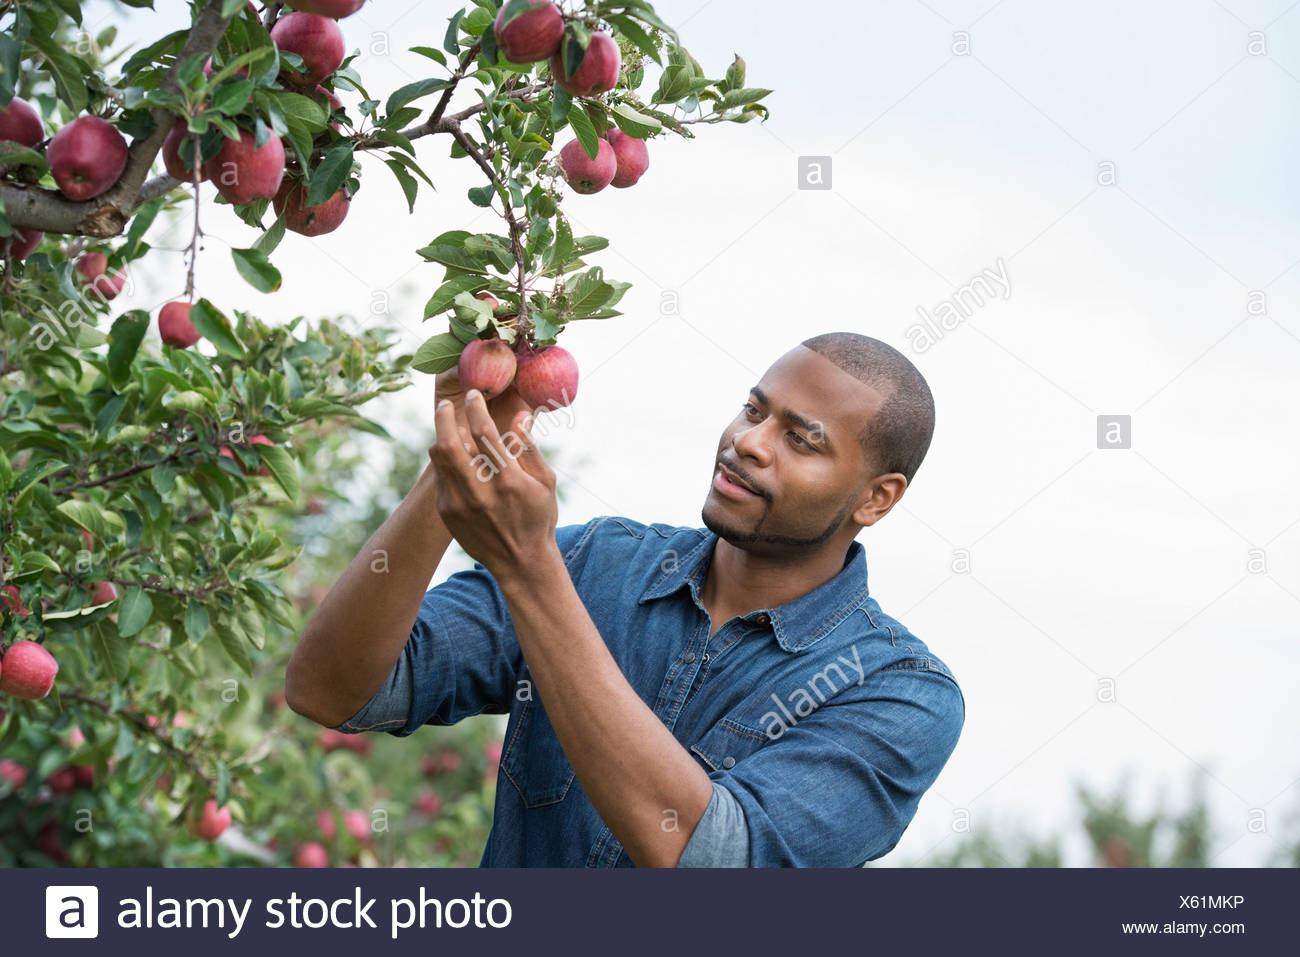 An organic apple tree orchard. A man picking the ripe red apples. - Stock Image